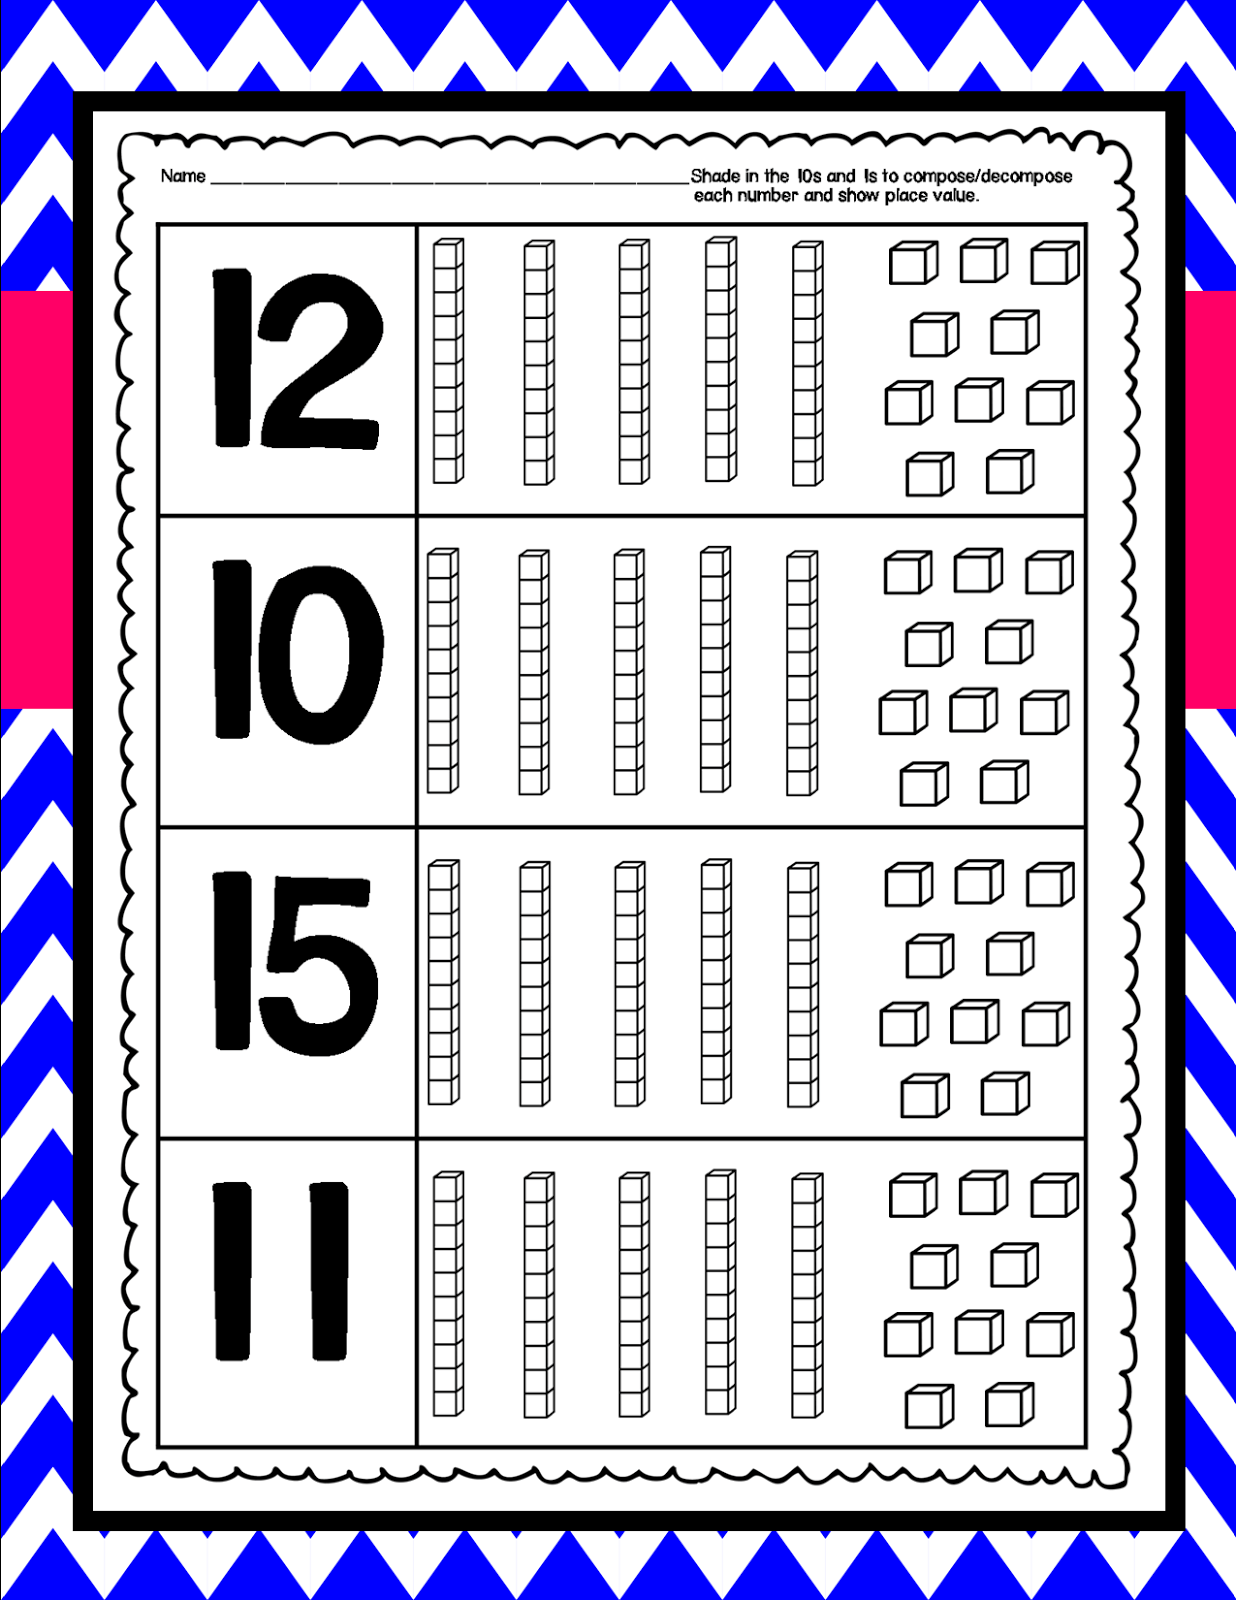 Compose Decompose Numbers And Place Value Kindergarten